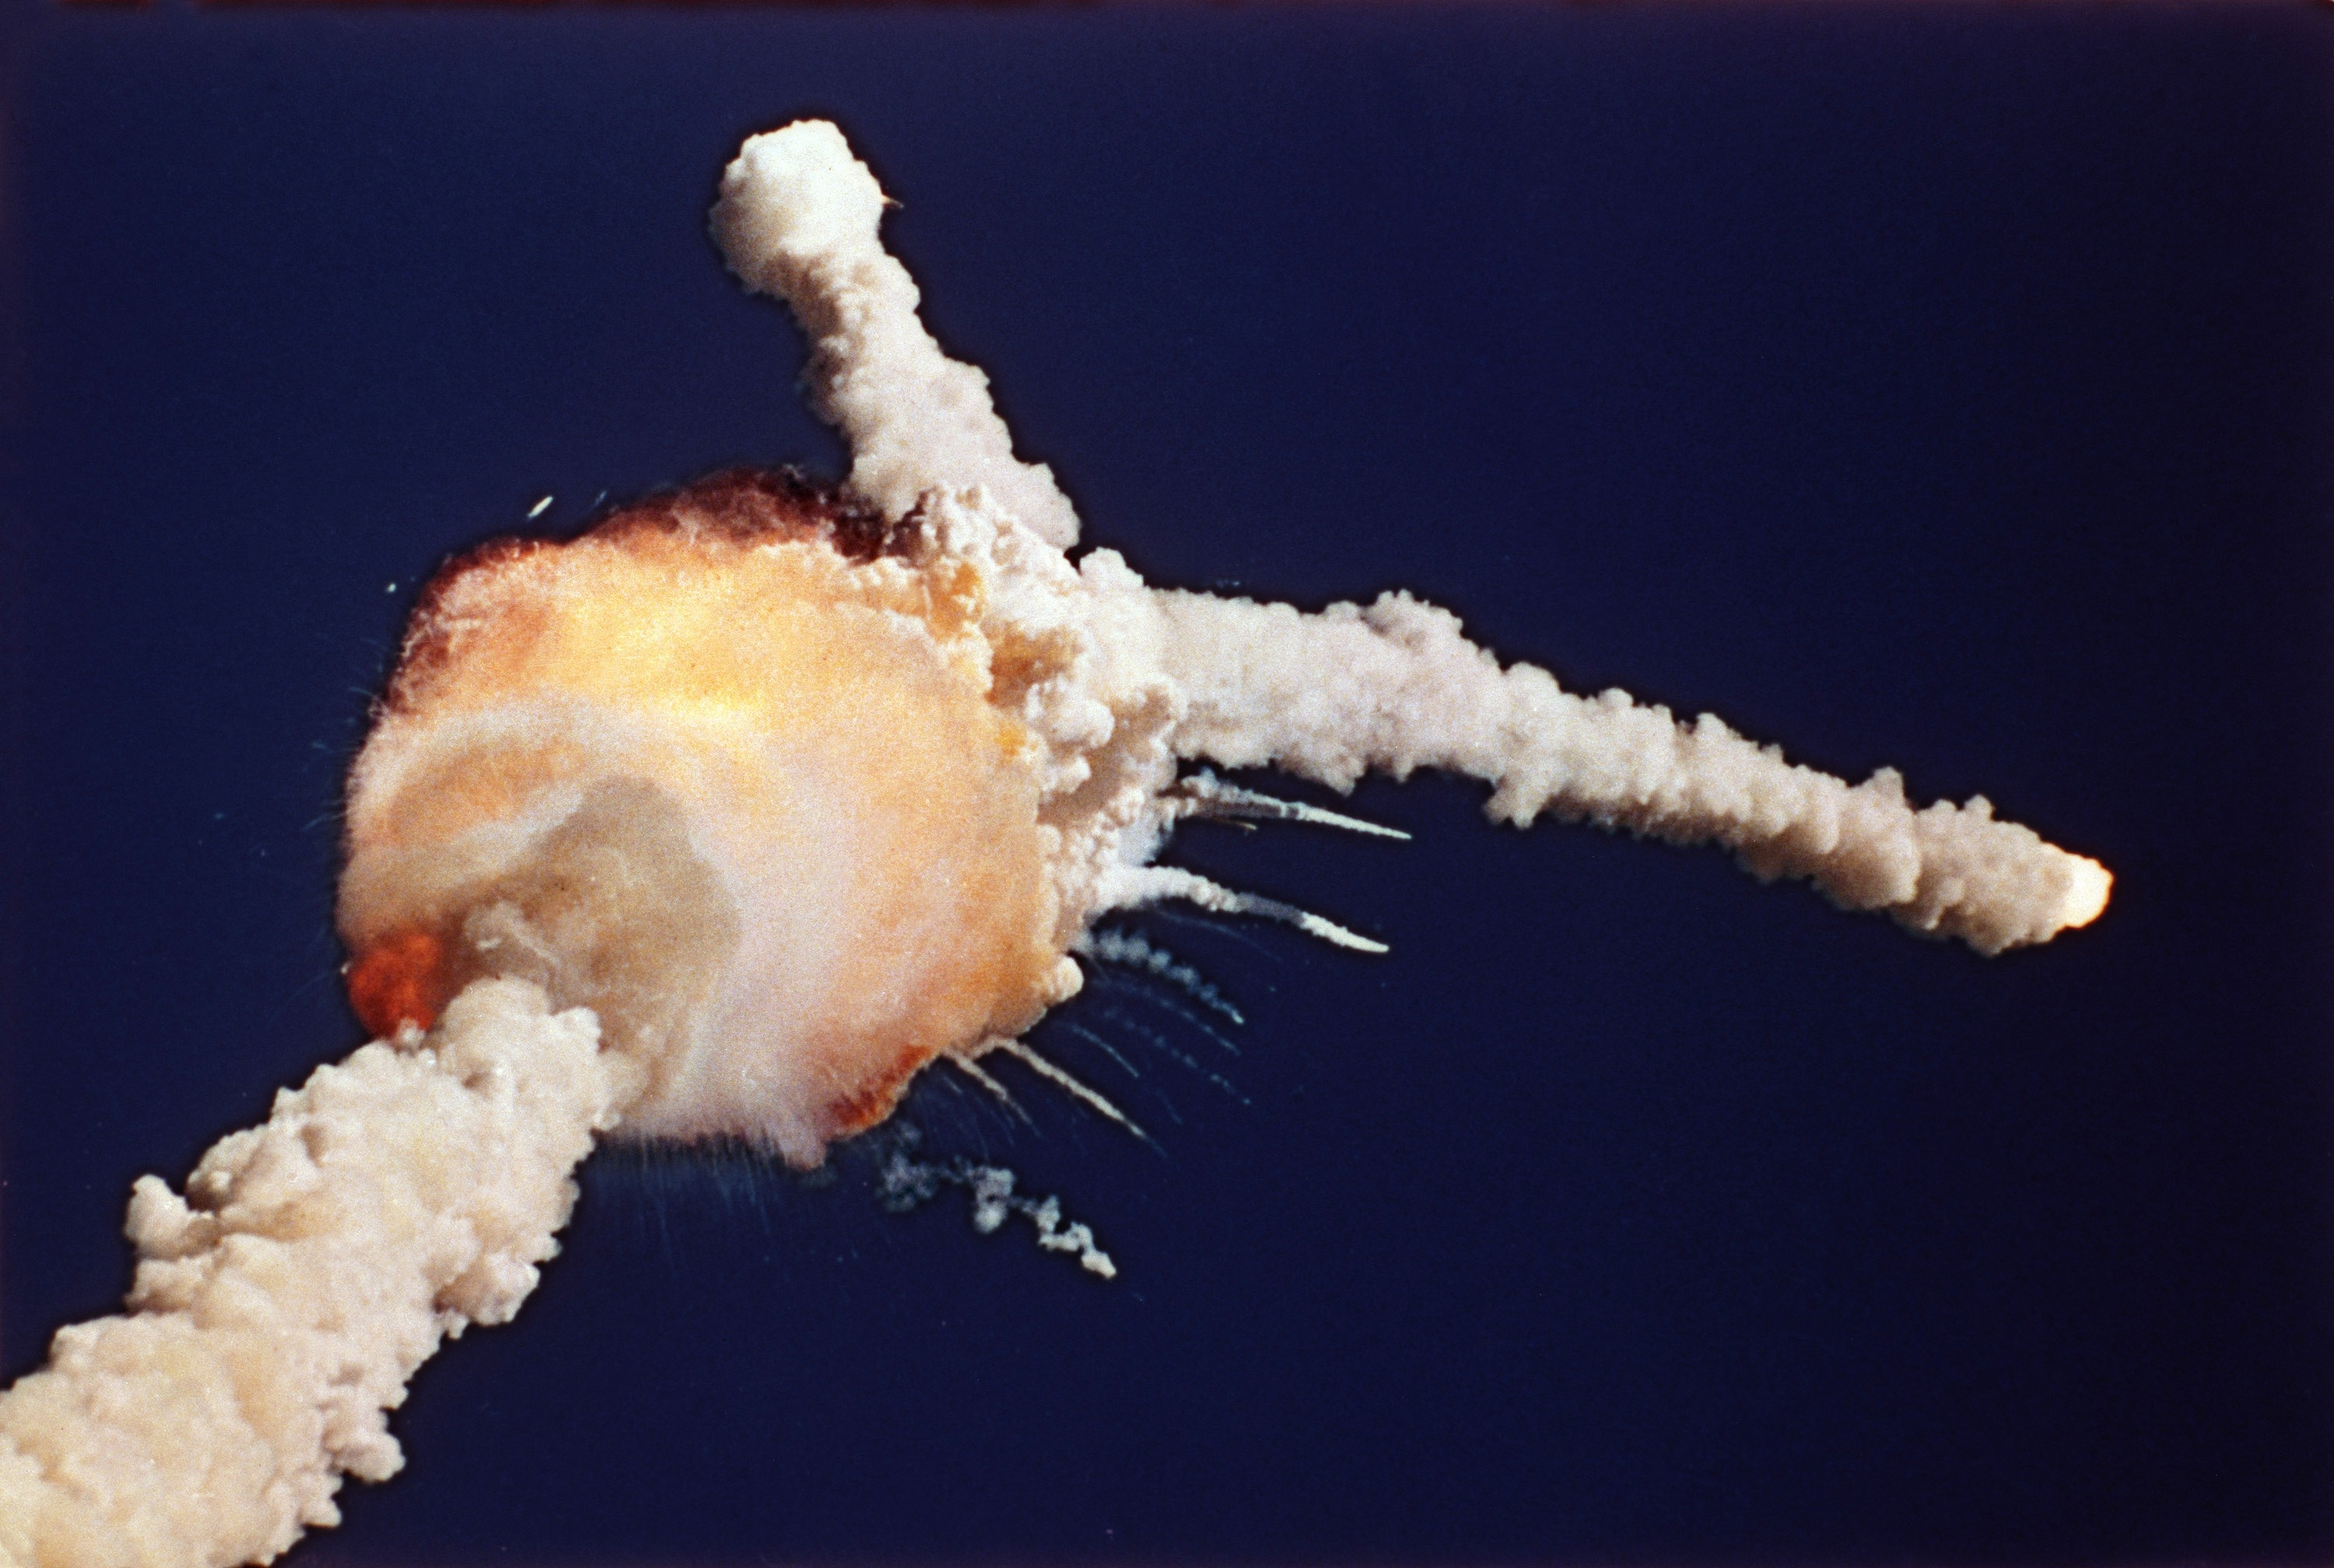 when did space shuttle challenger blow up - photo #4